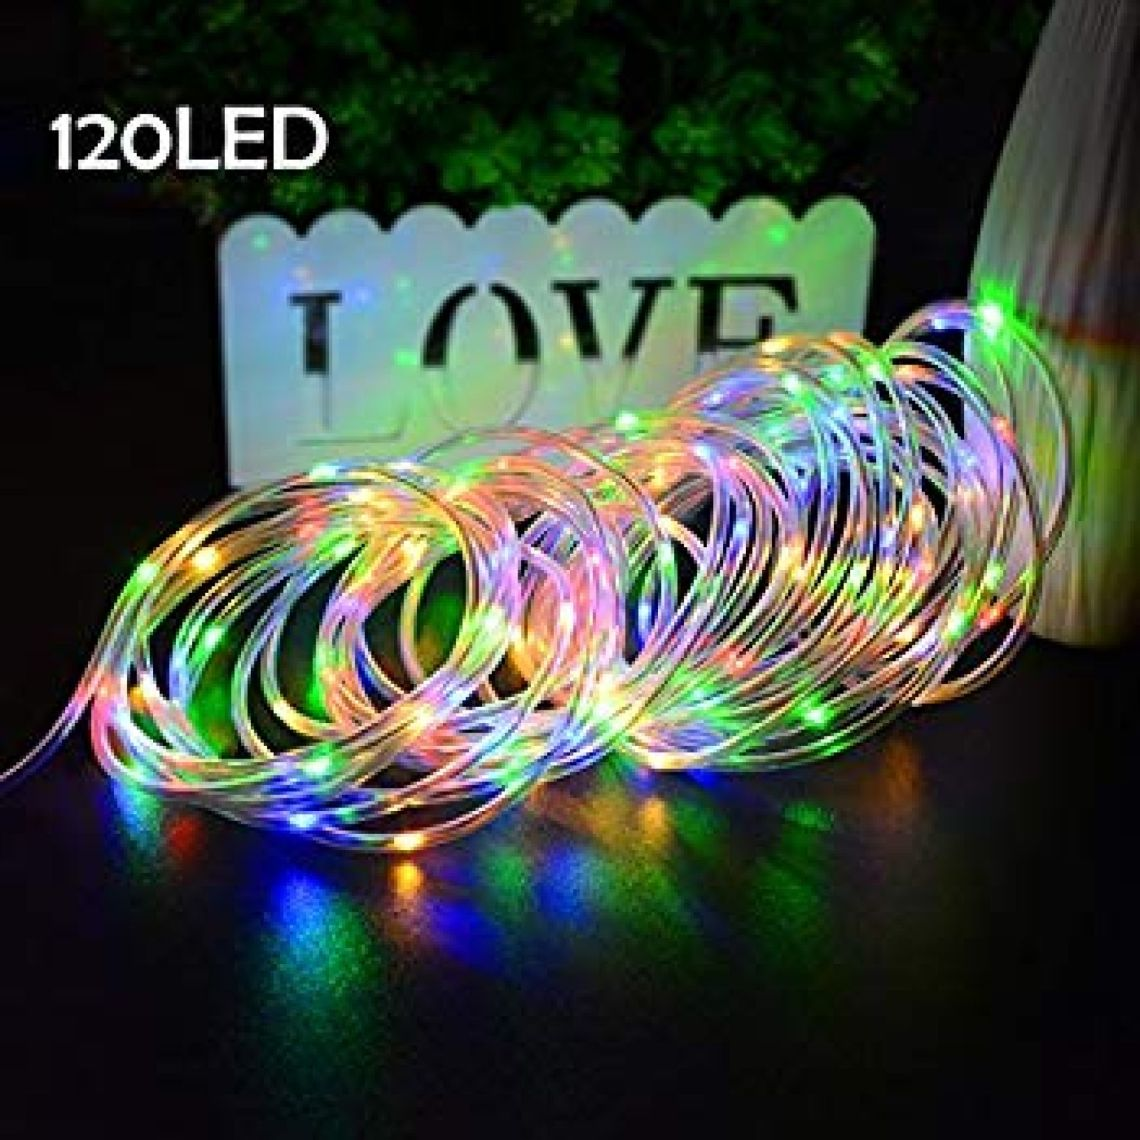 amazoncom vmanoo rope lights 120 led battery operated string fairy christmas lighting decor - Battery Christmas Lights Amazon